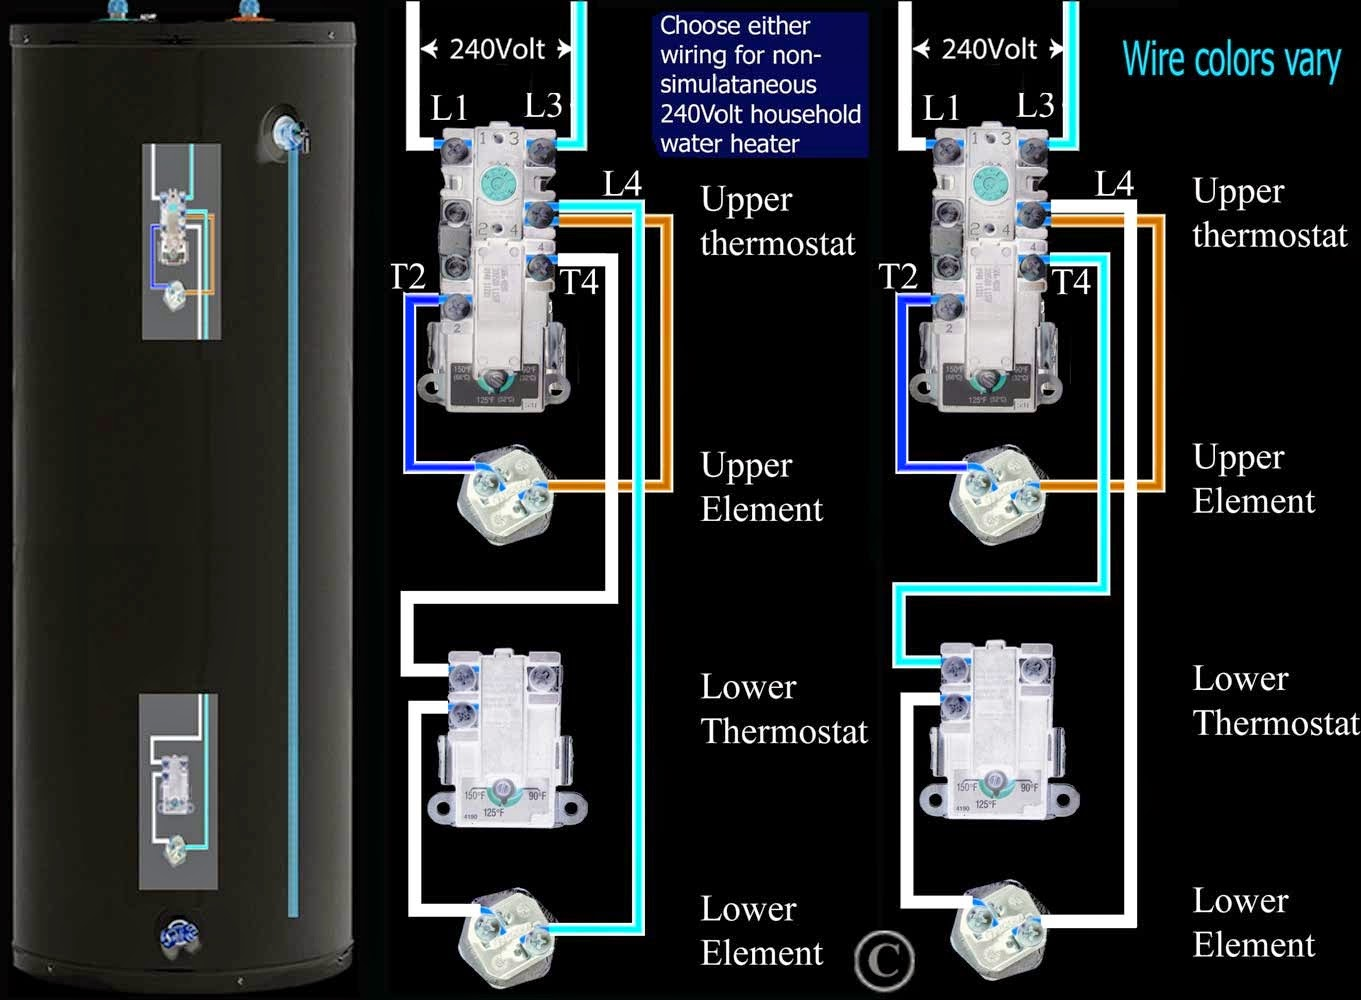 Electric Work: How to figure Volts=AmpsWatts for residential water heater